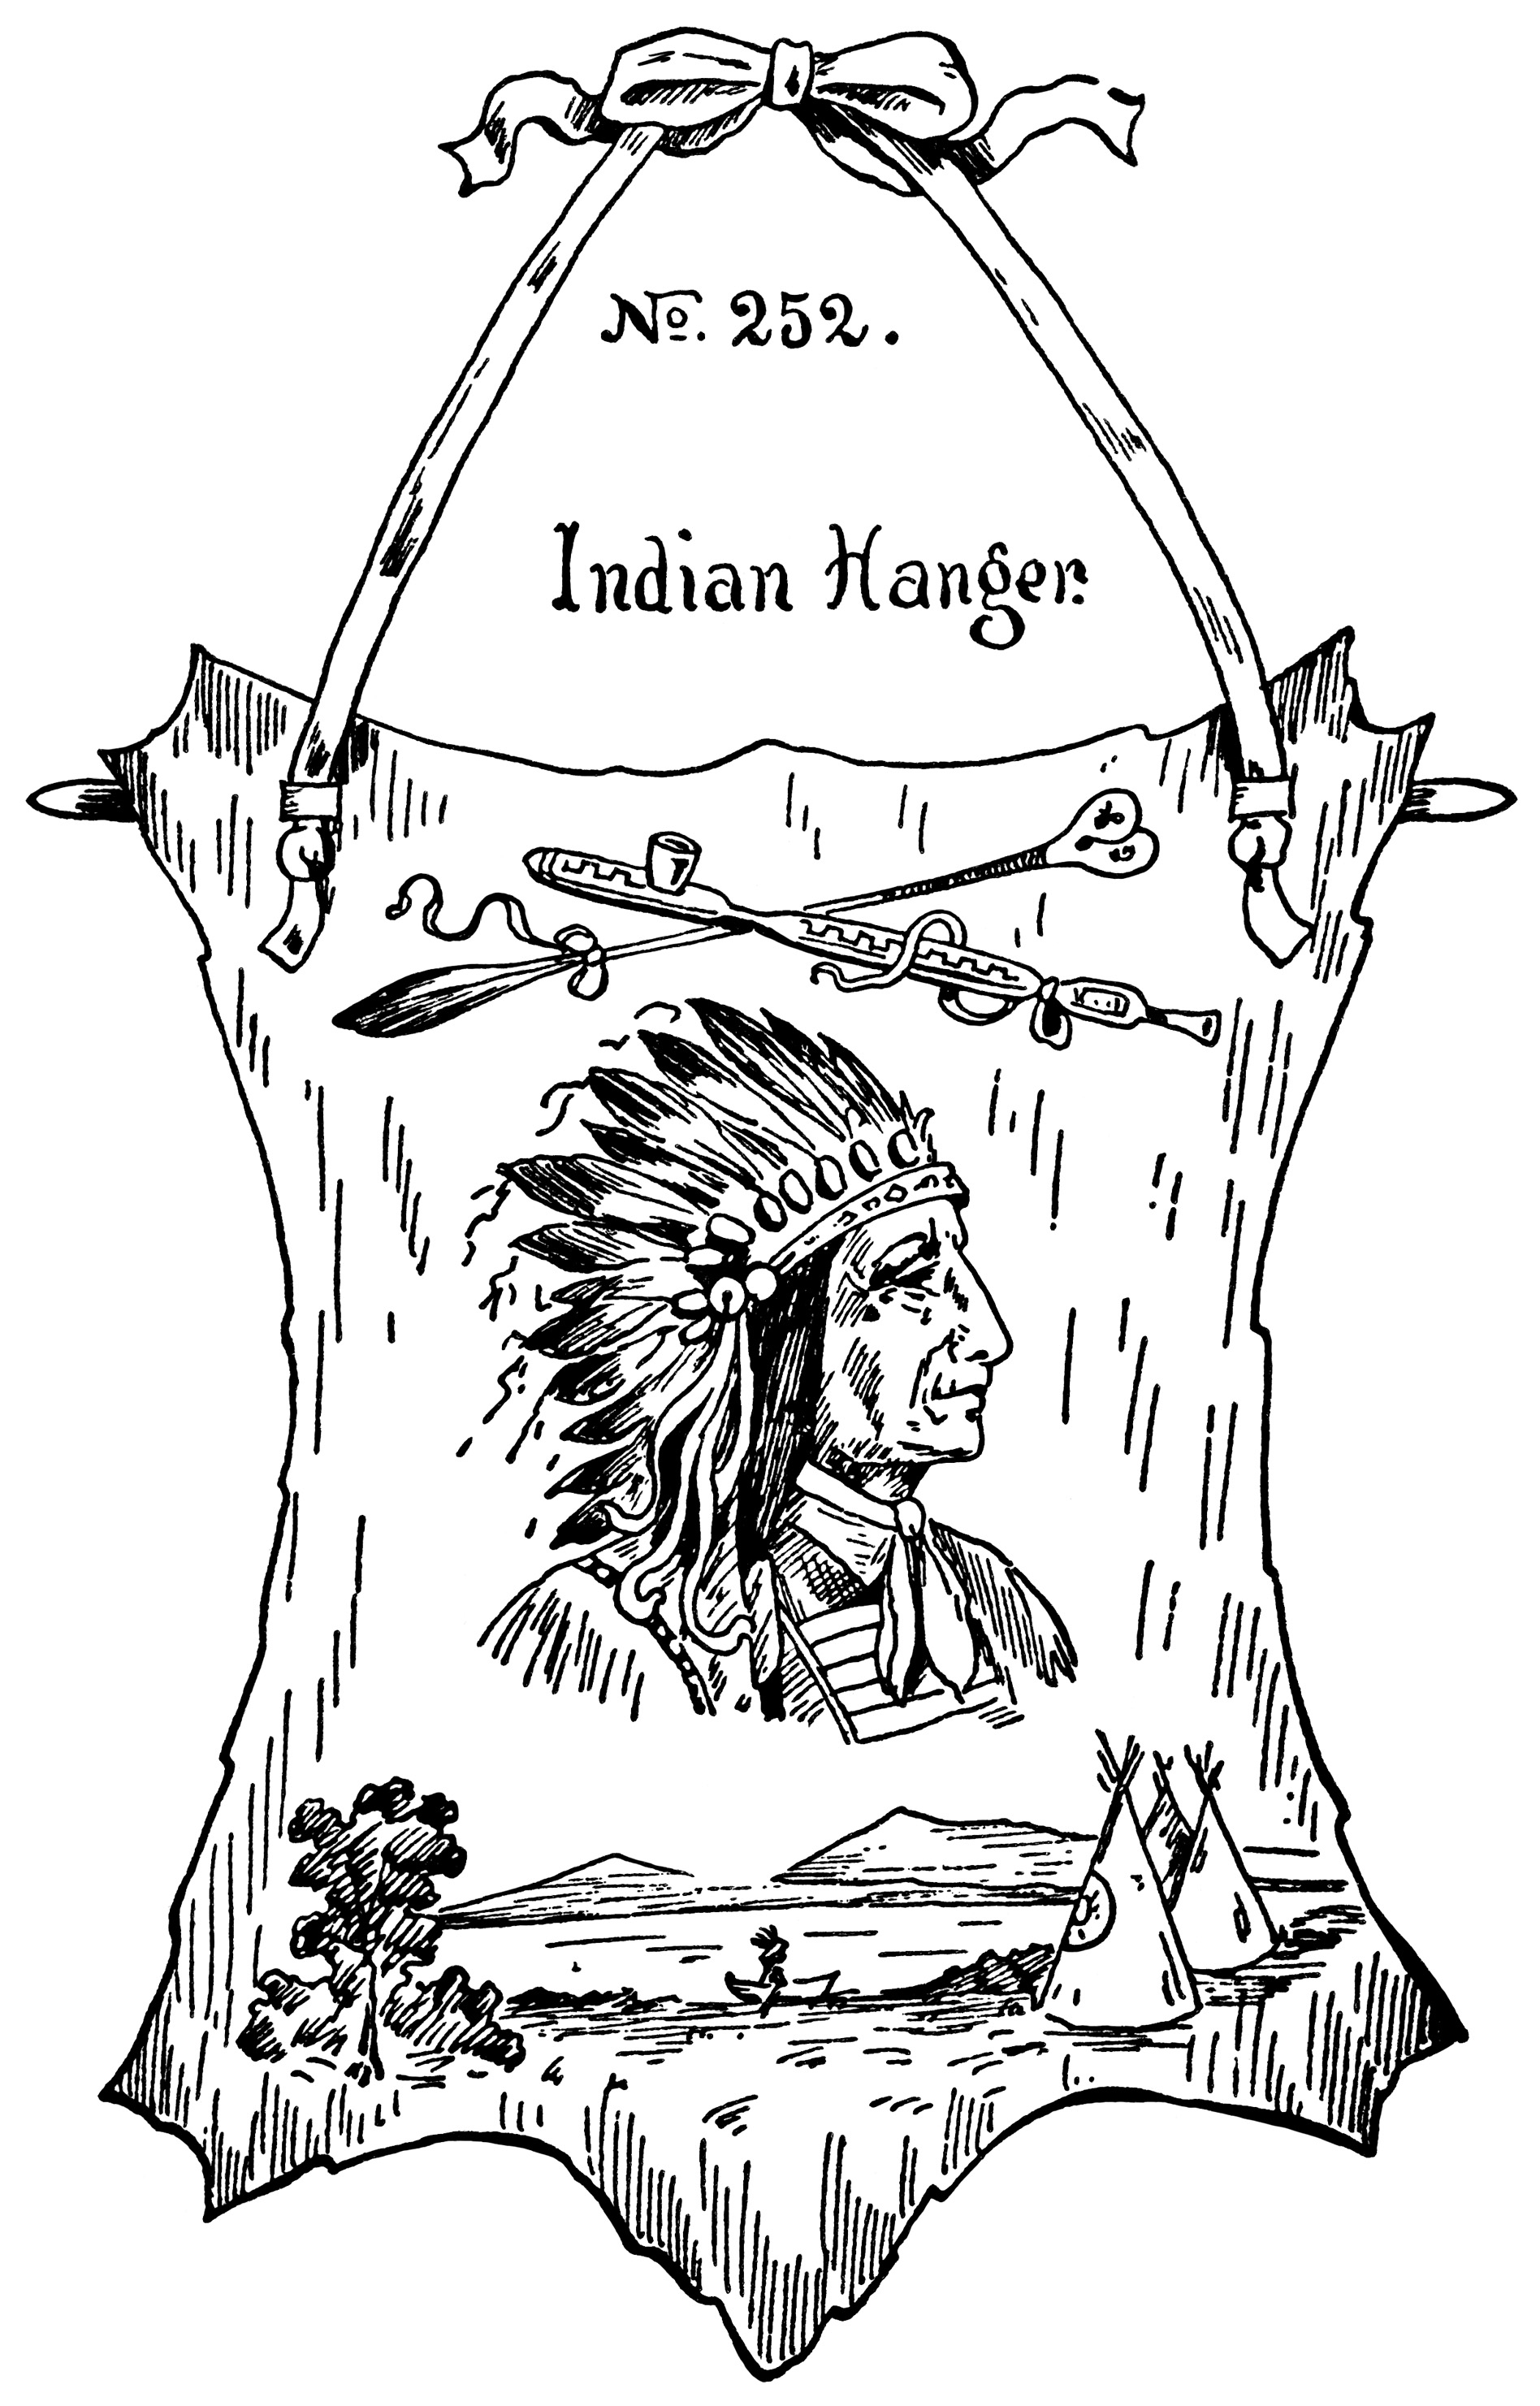 hight resolution of indian chief clip art vintage native american illustration black and white clipart warrior